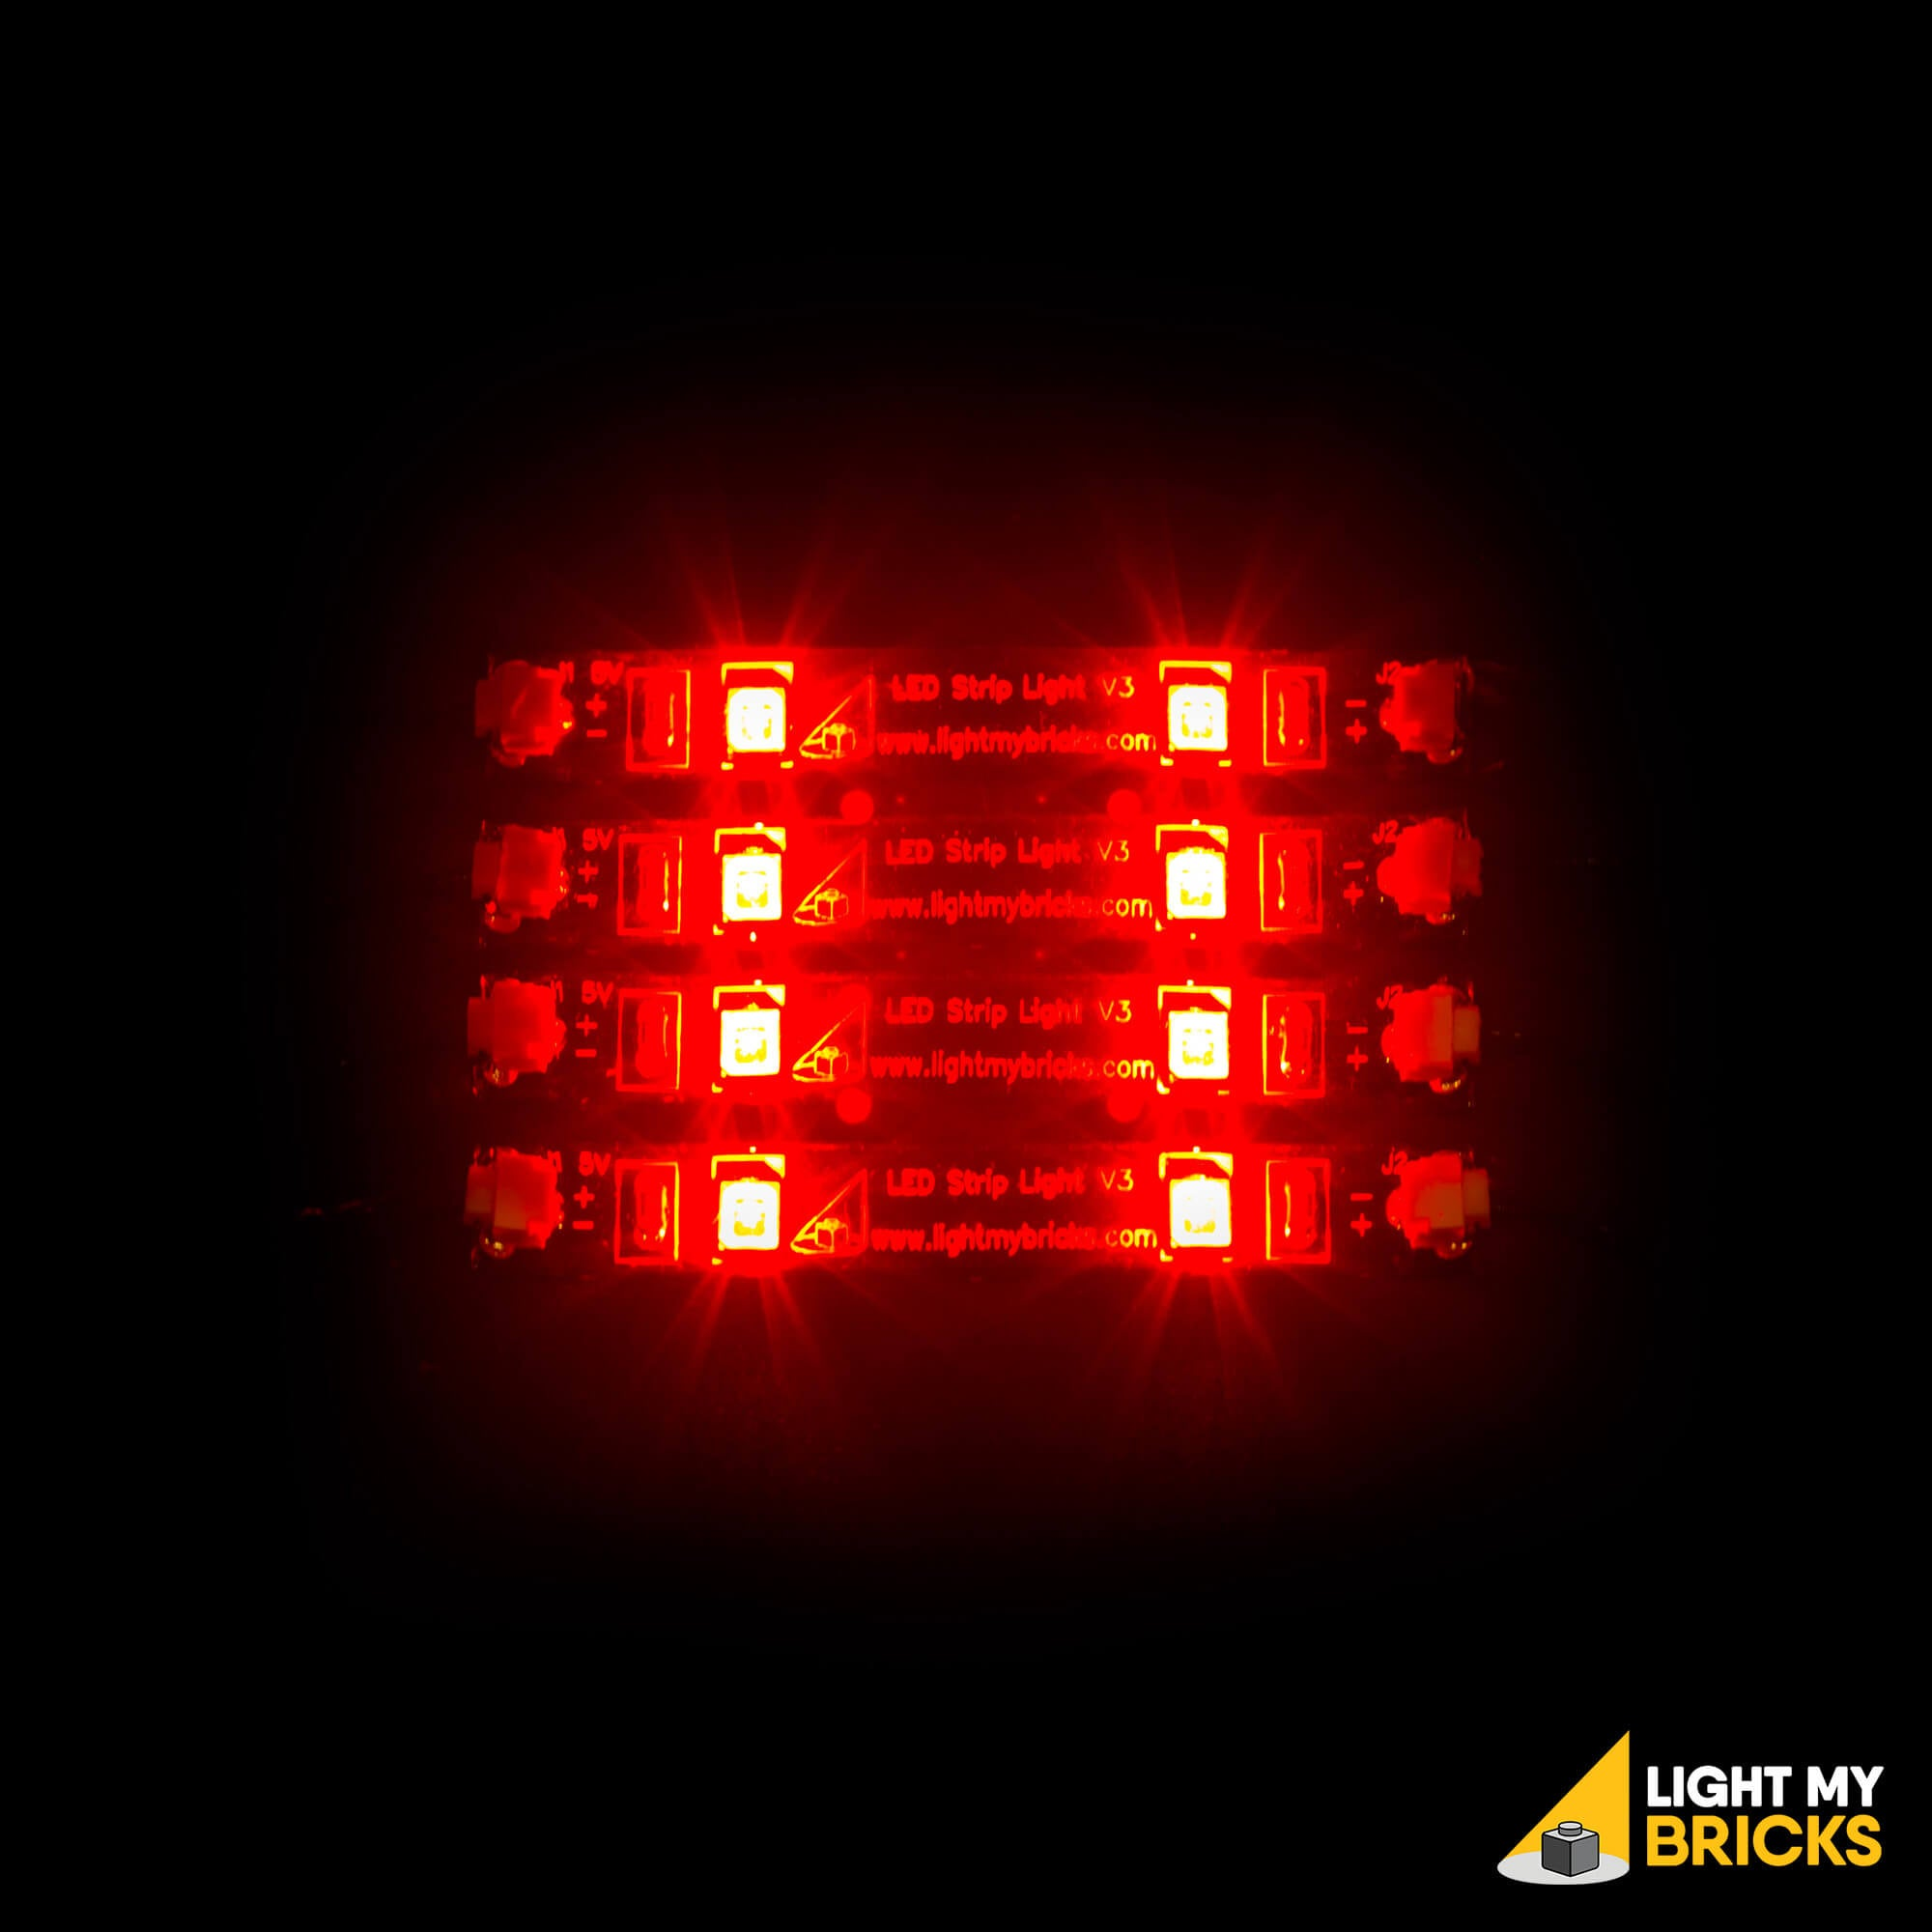 Light My Bricks LEGO Lighting Component - LED Strip Light Red Activated